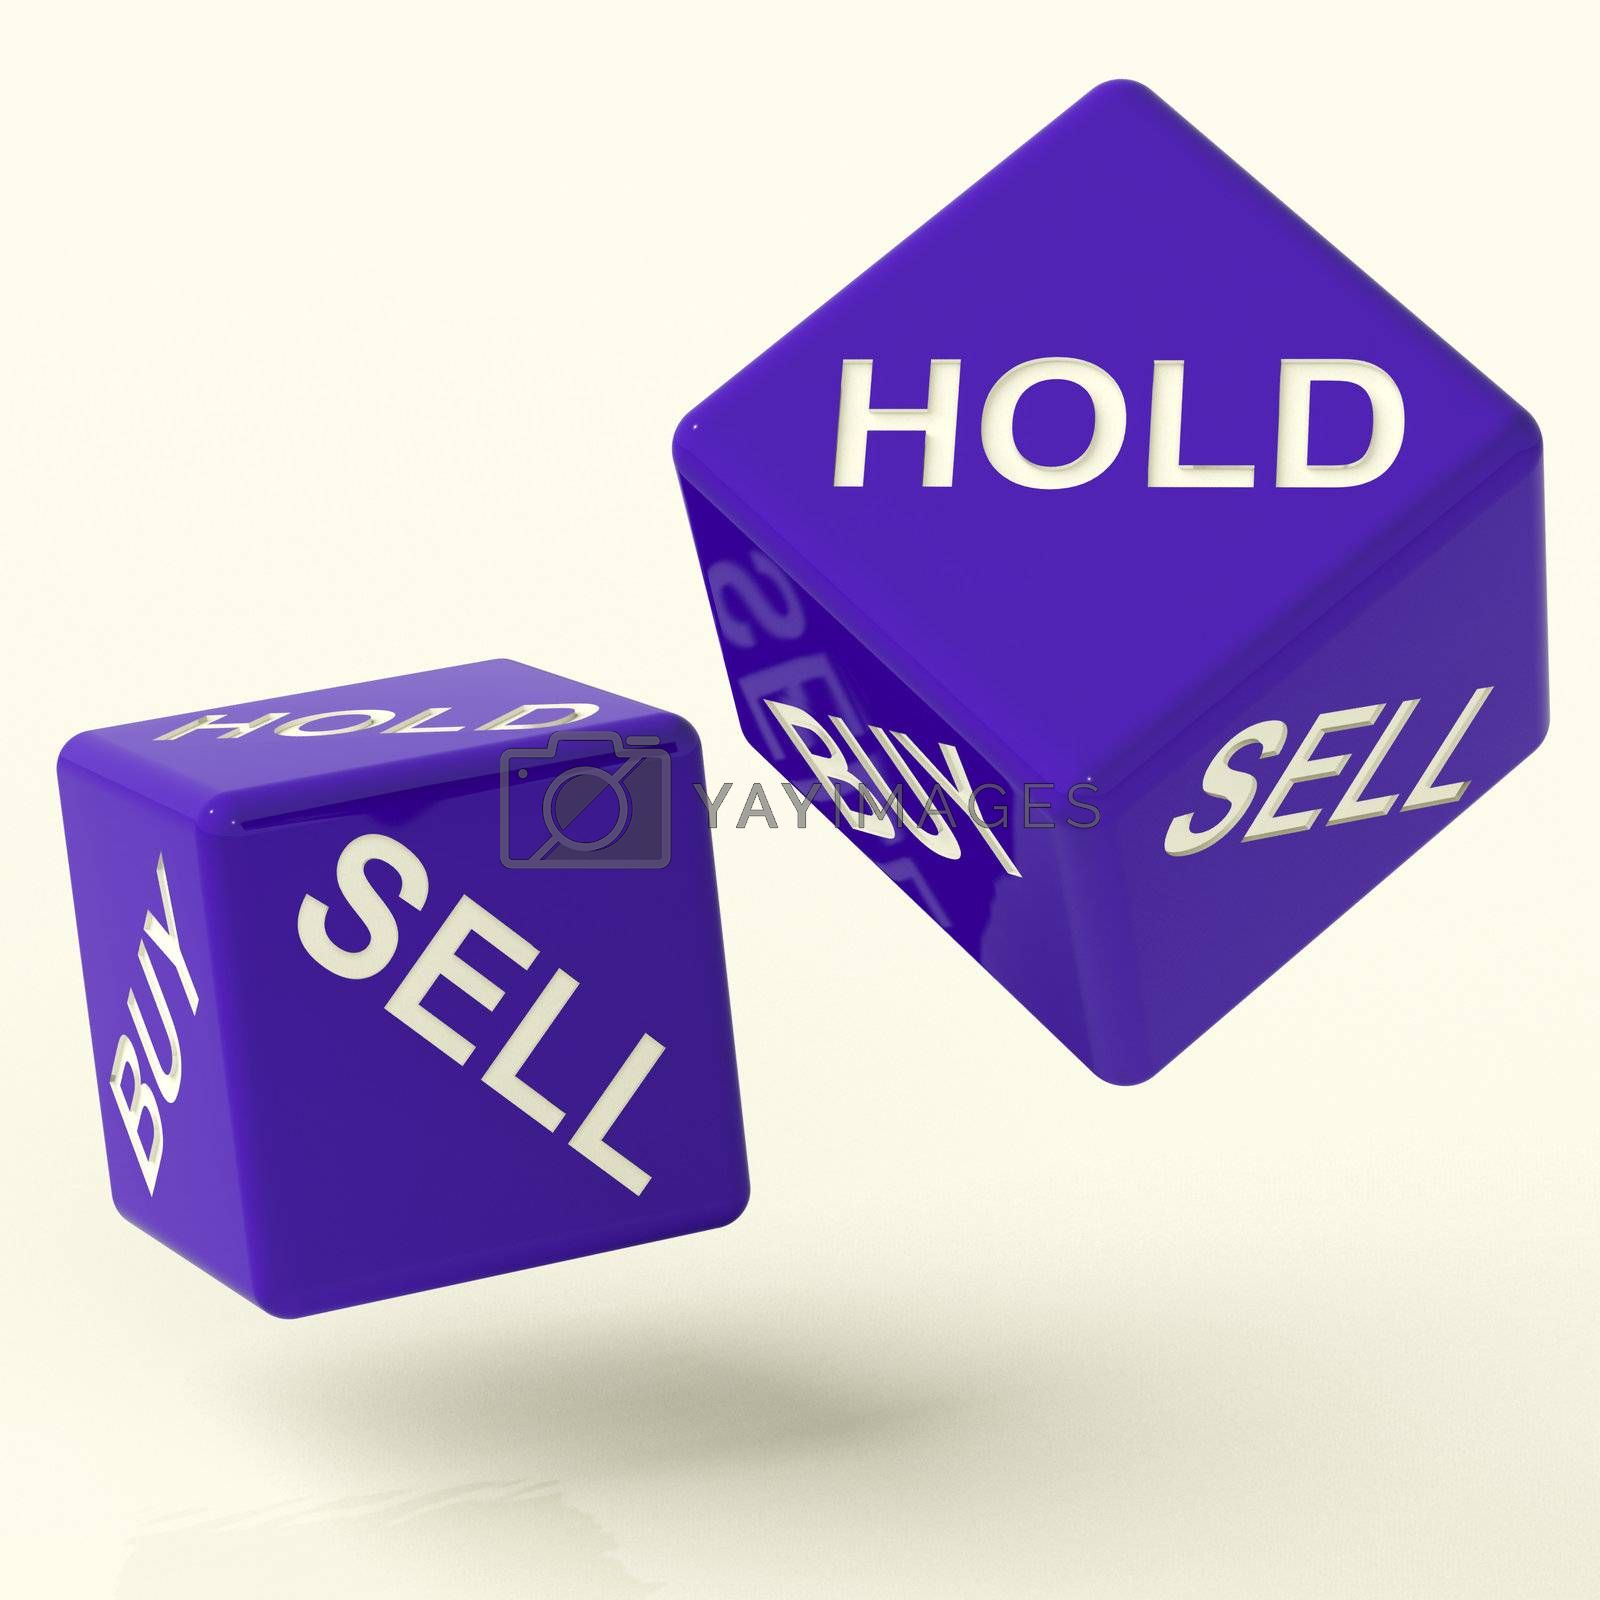 Buy Hold And Sell Blue Dice Representing Market Strategy